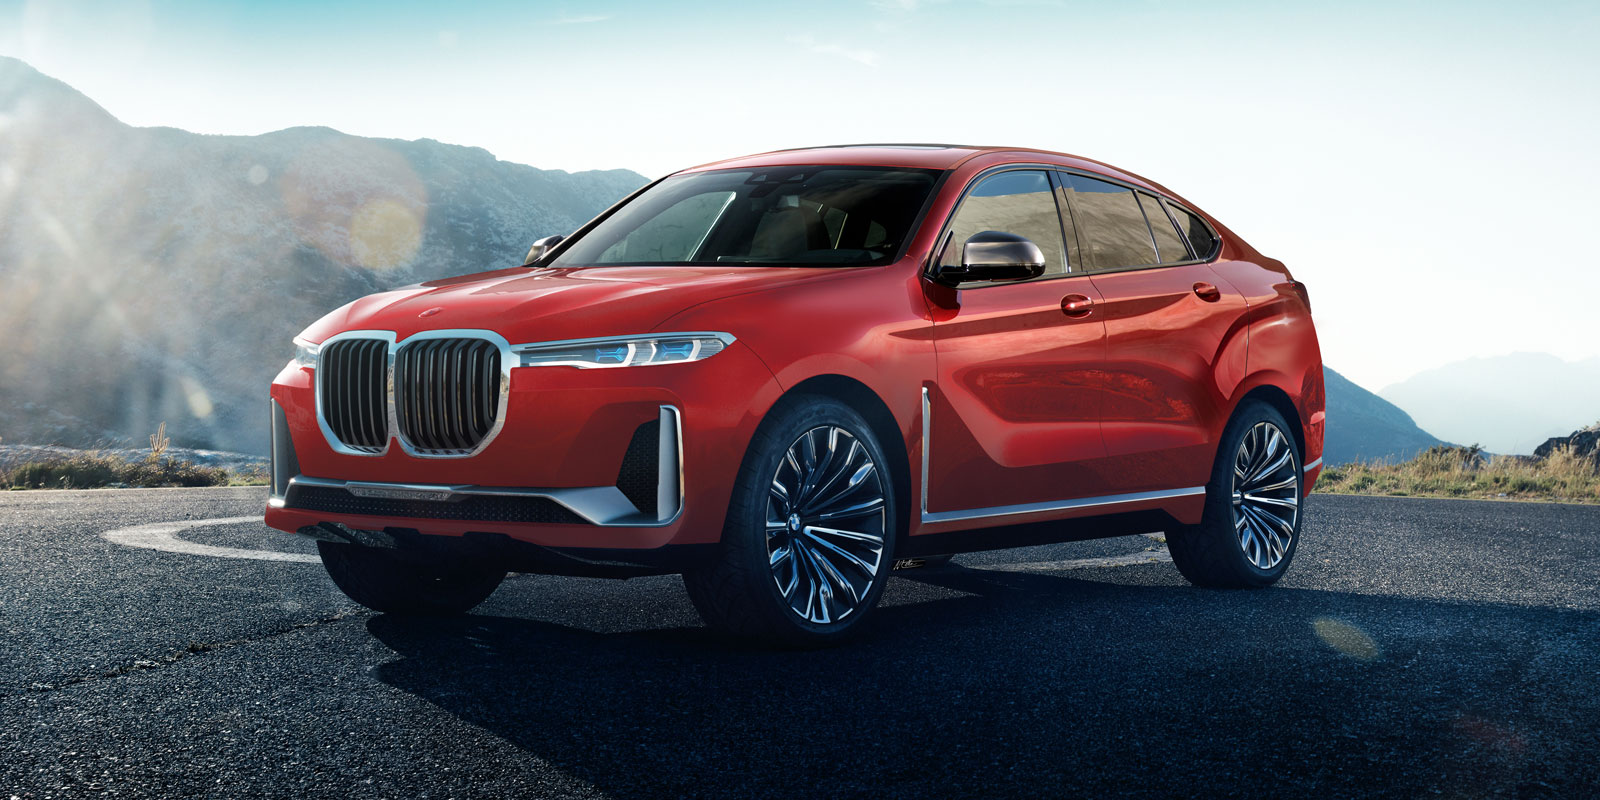 2019 BMW X8 price, specs and release date | carwow